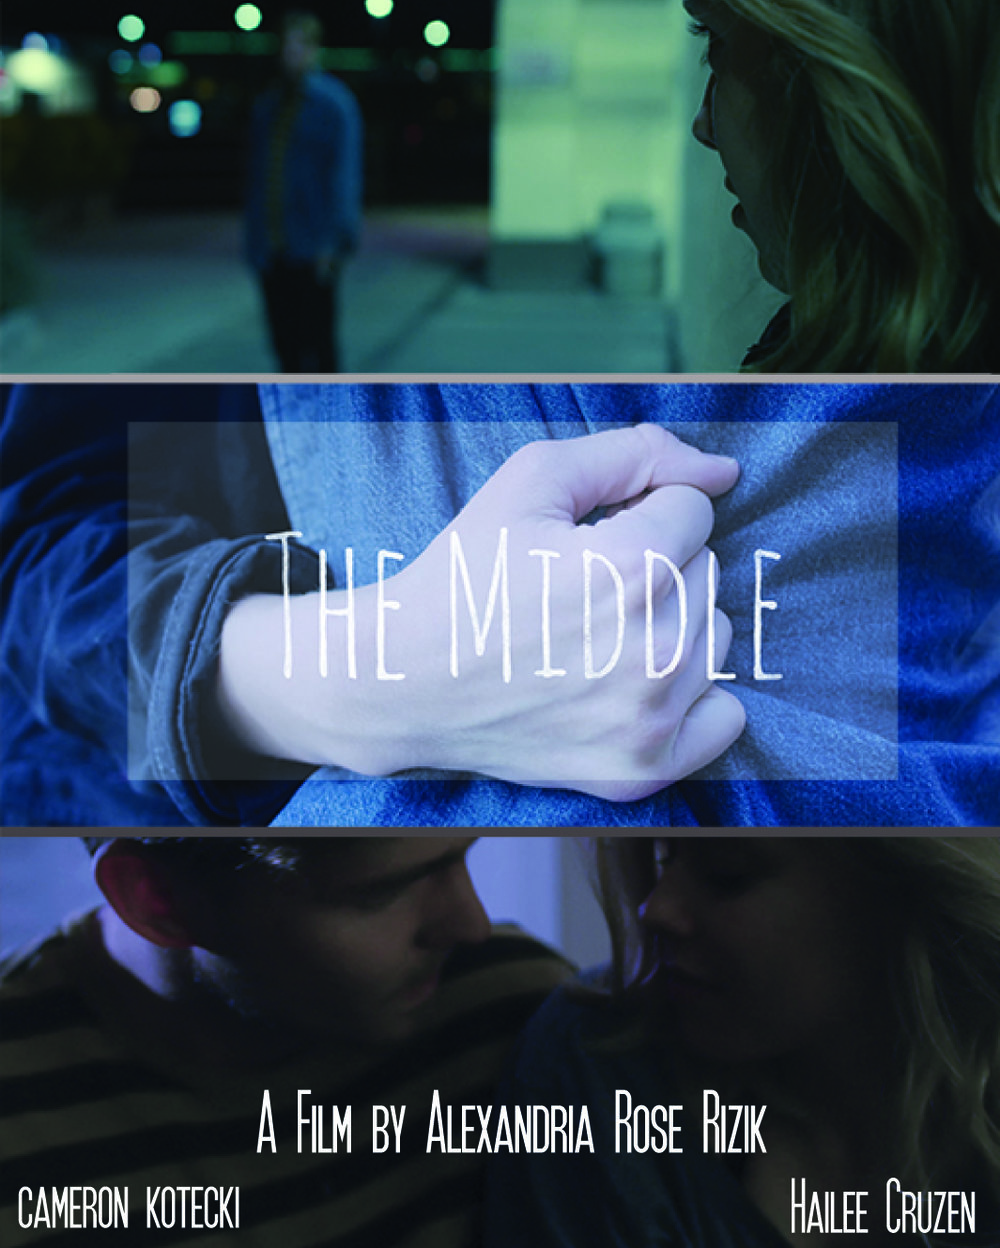 The Middle movie poster